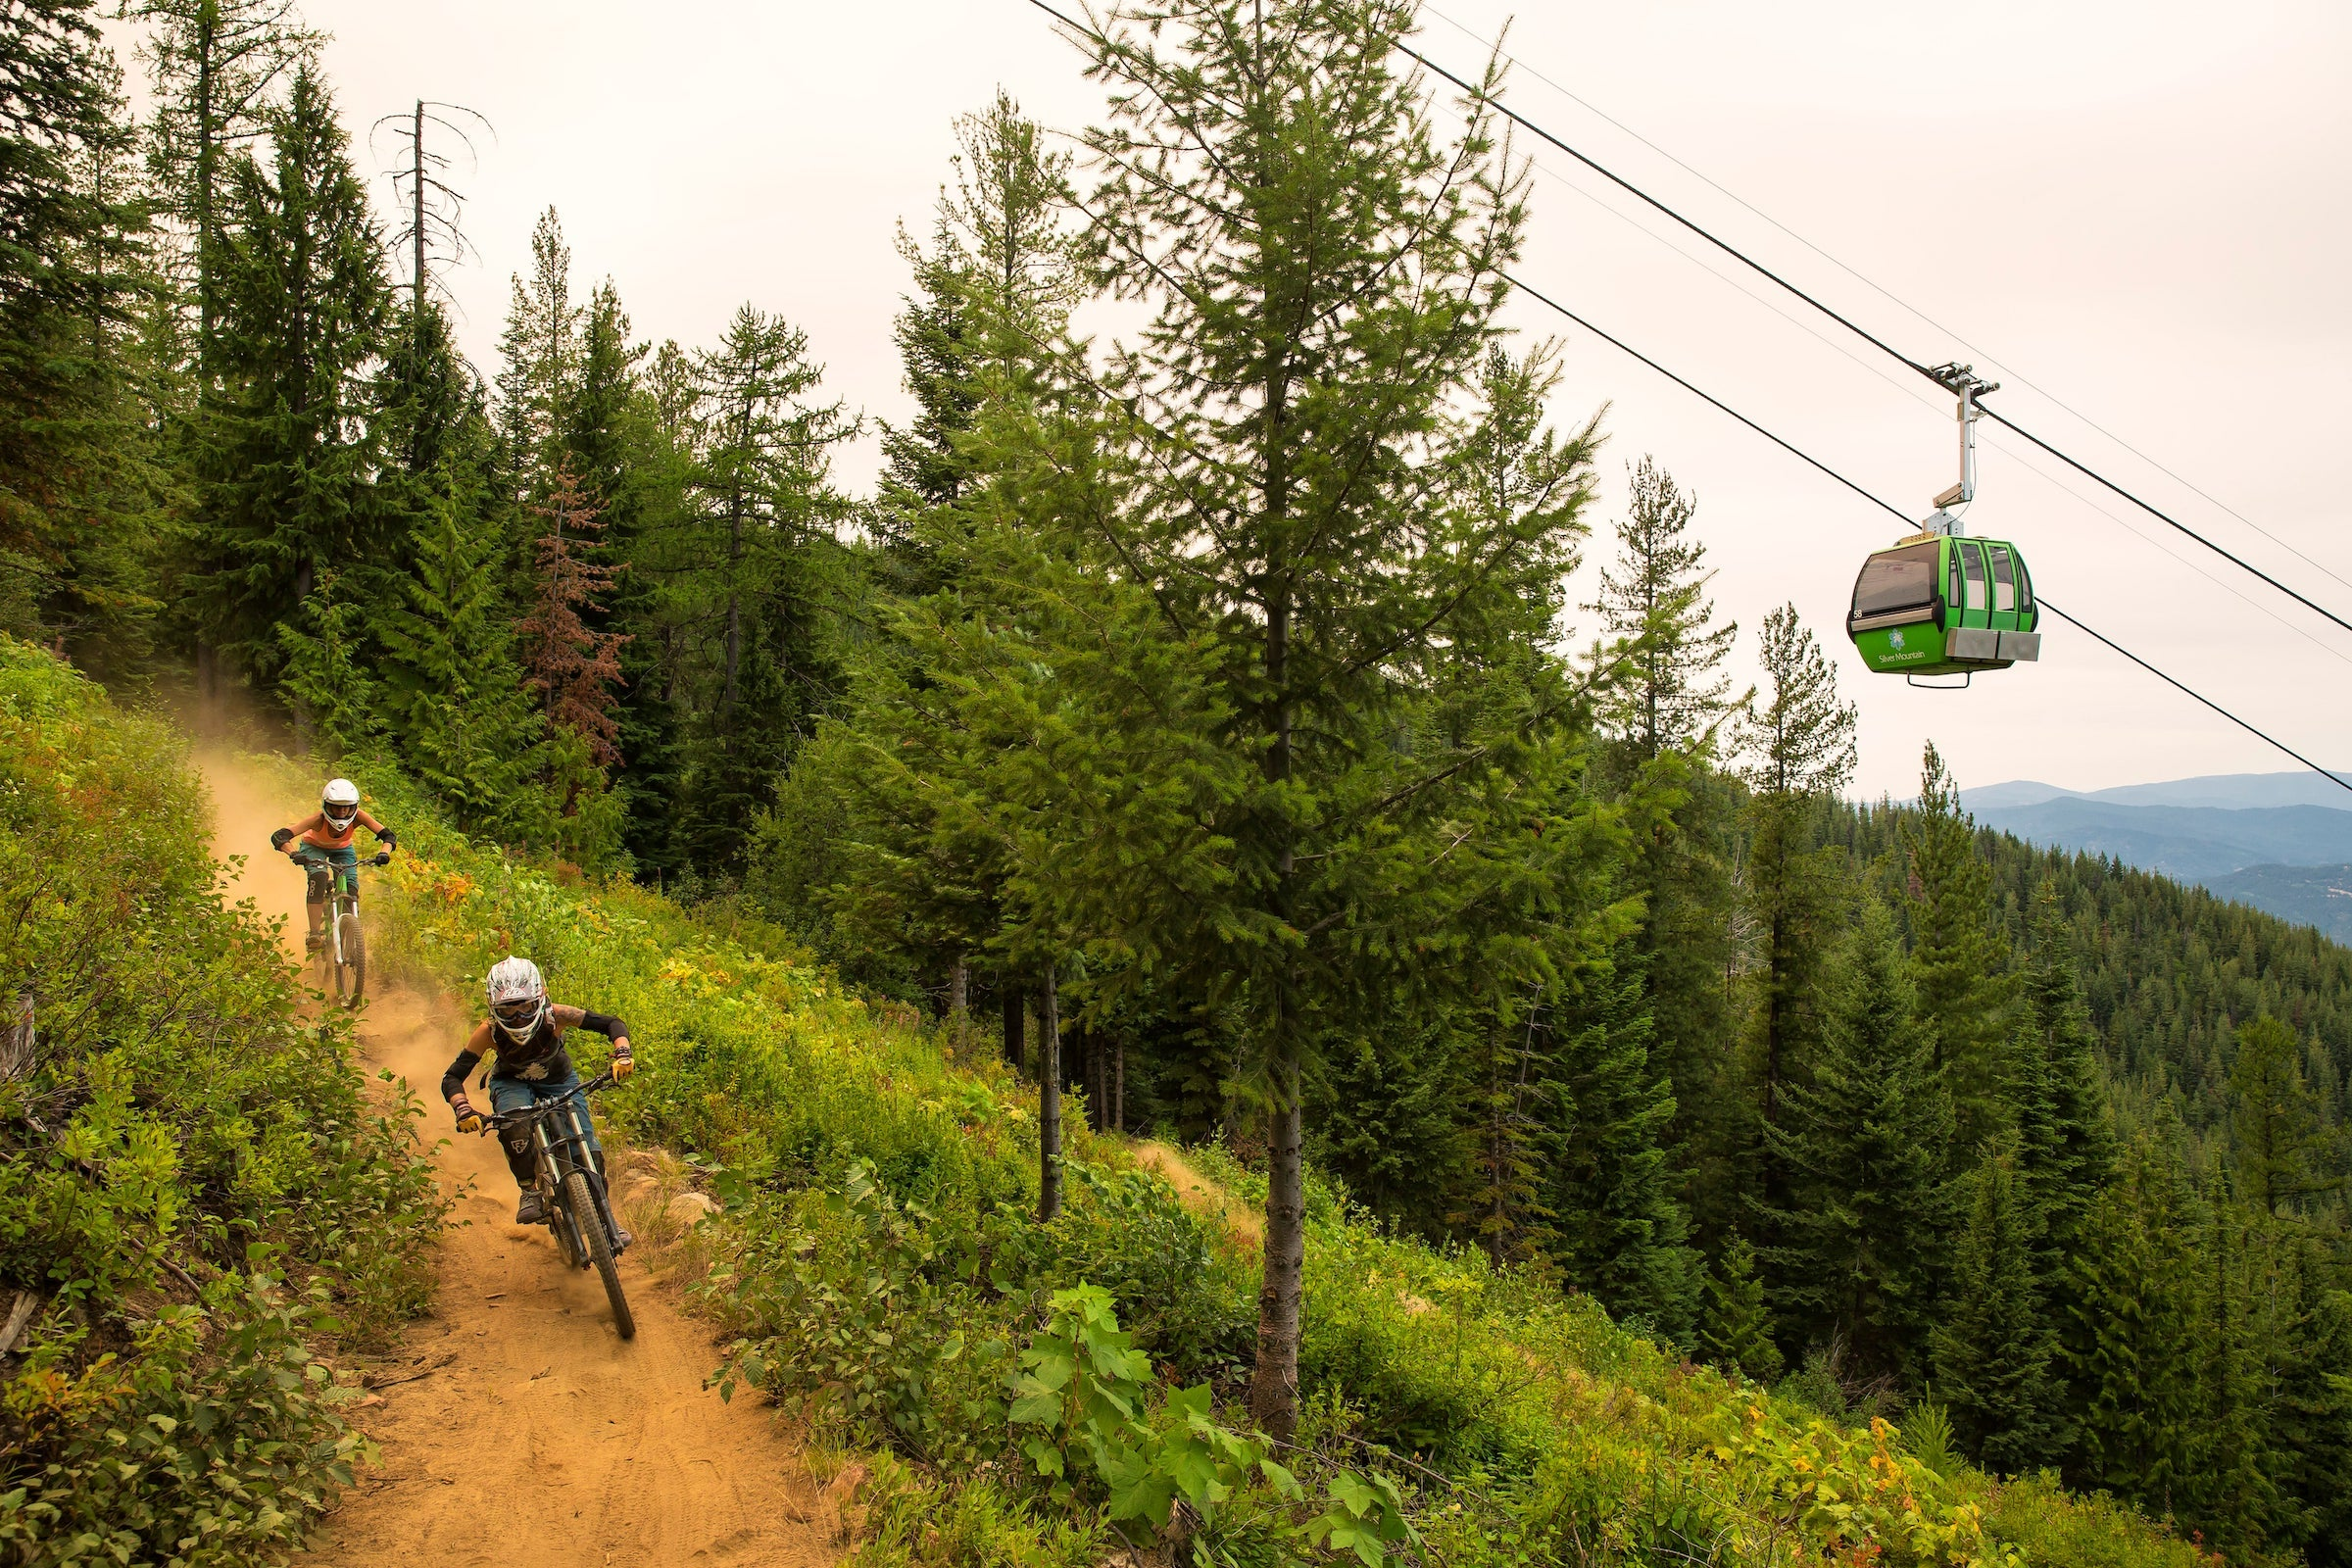 Check Yourself Before You Wreck Yourself With These Mountain Biking Tips for Beginners